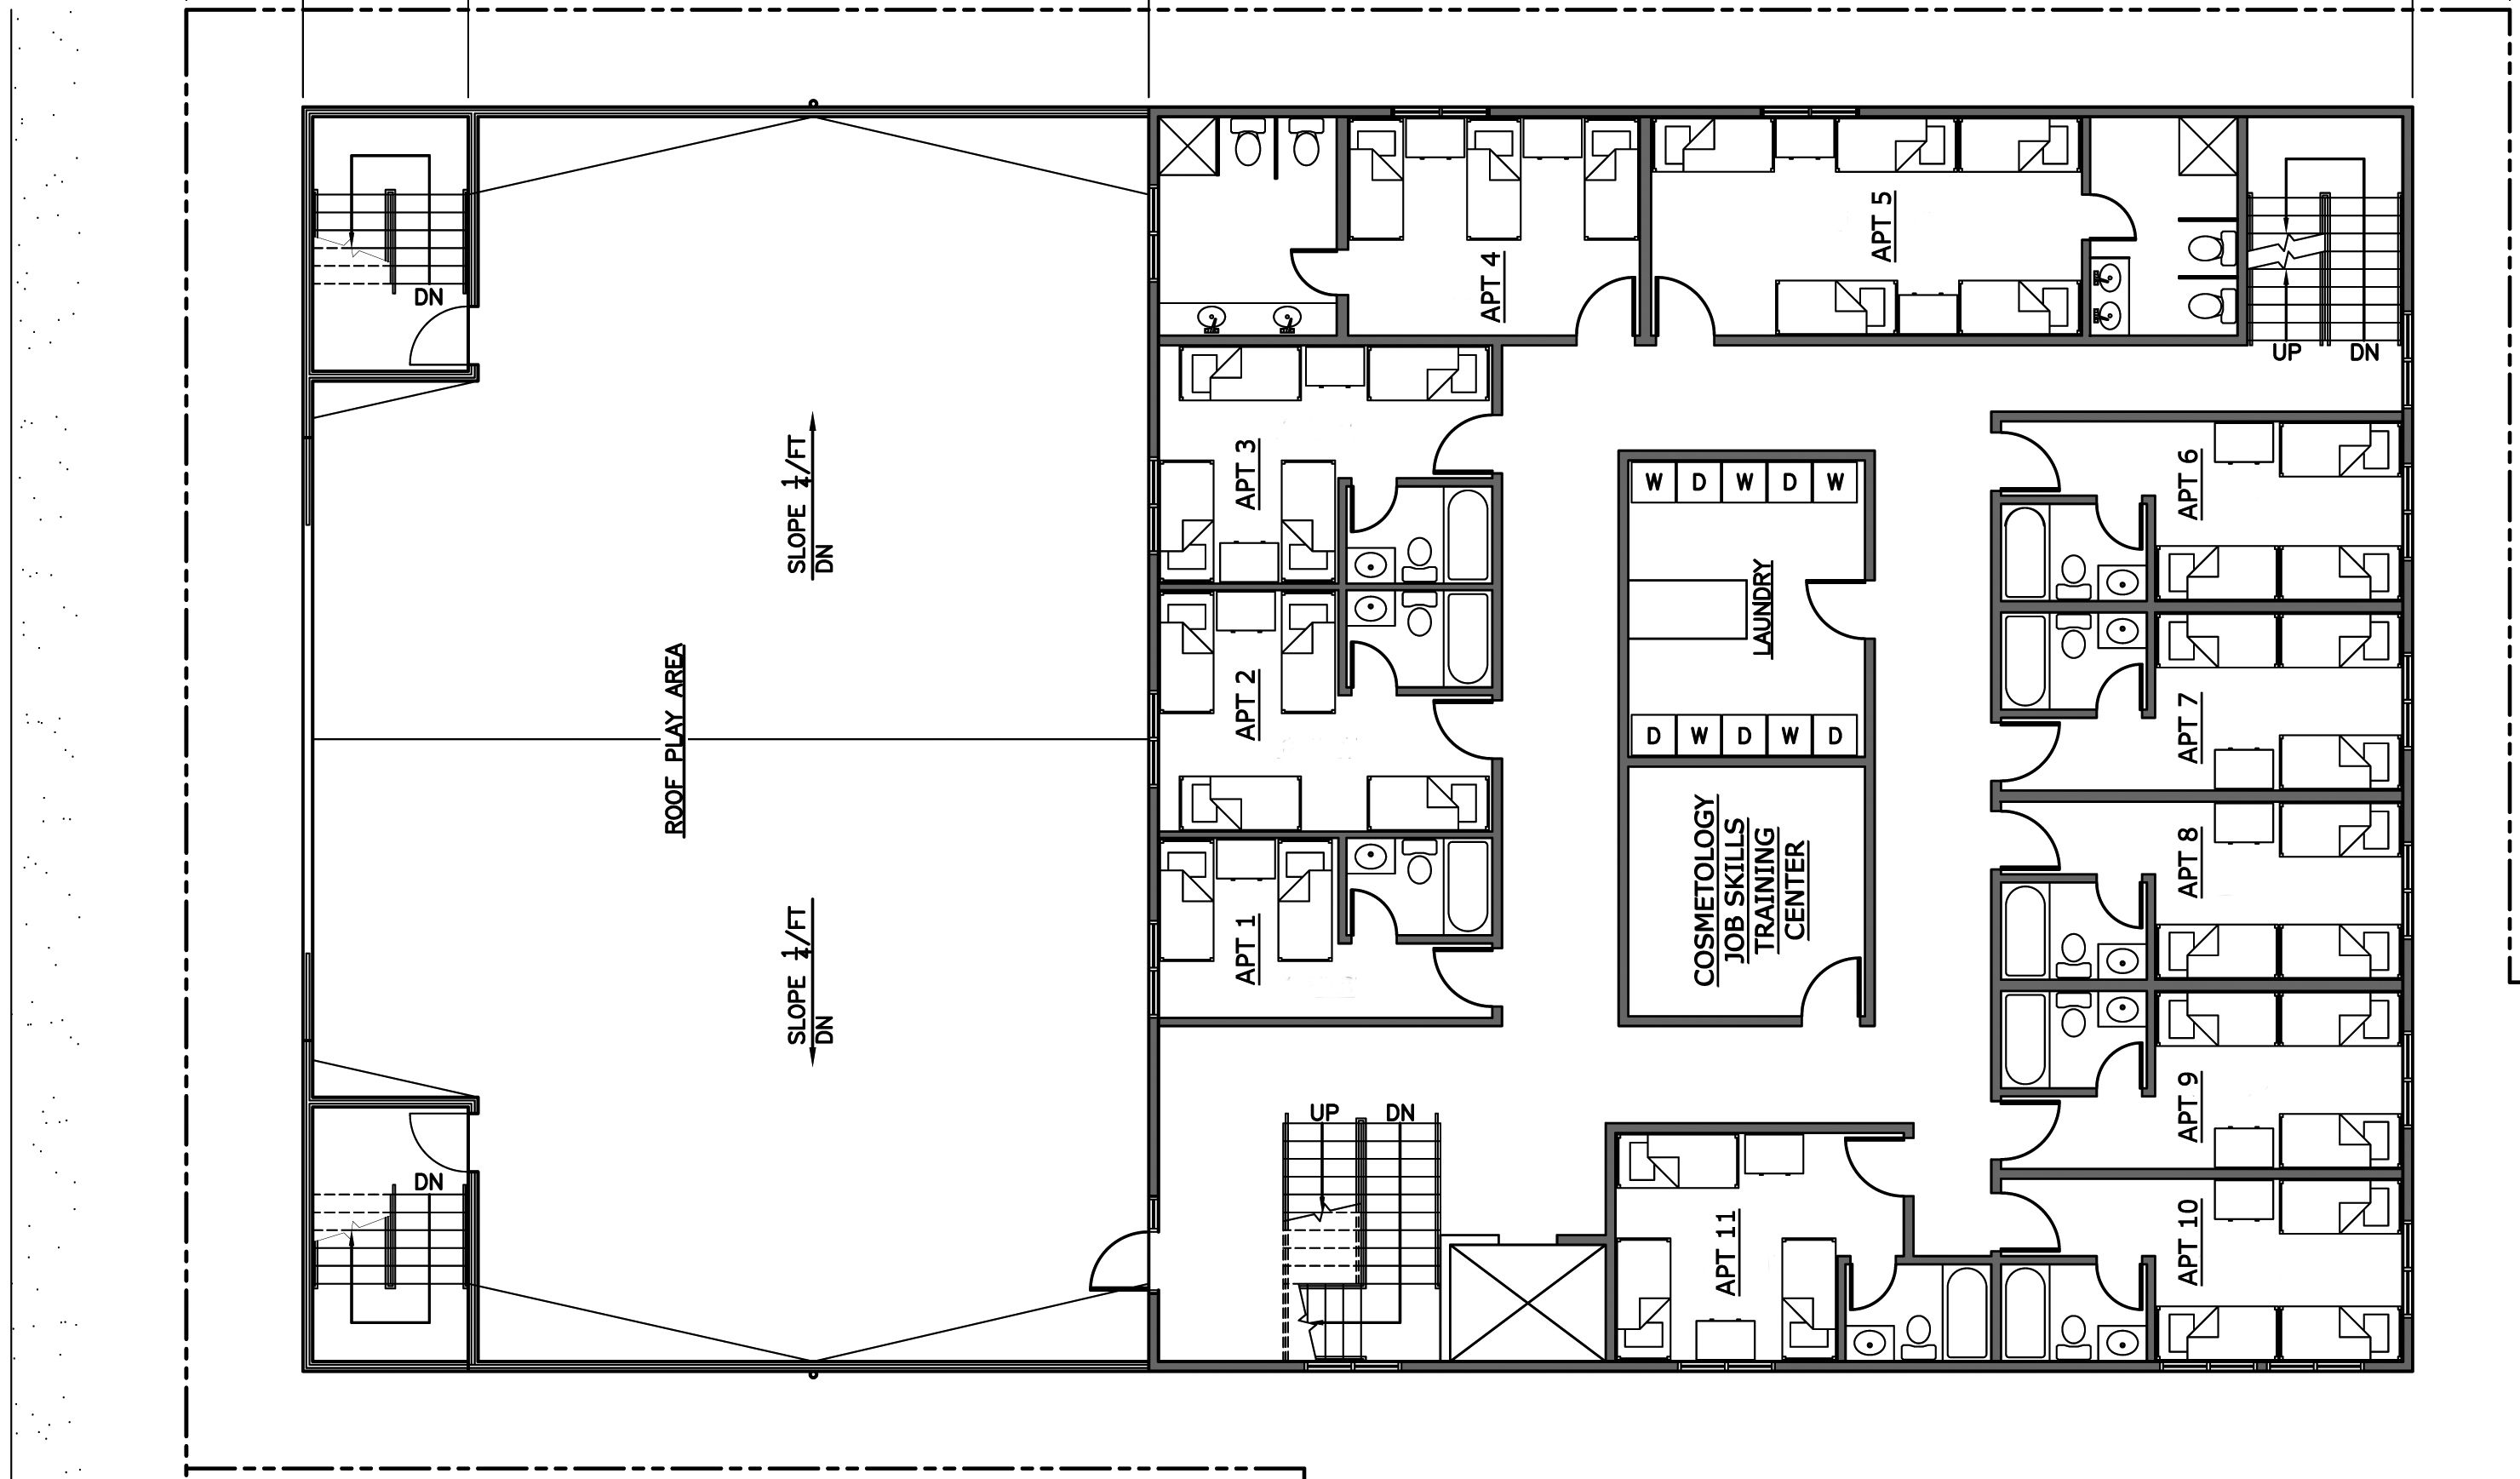 Architectural Plans For The Second Floor Blueprint Notation Plan Architecture Plan Architecture House Design